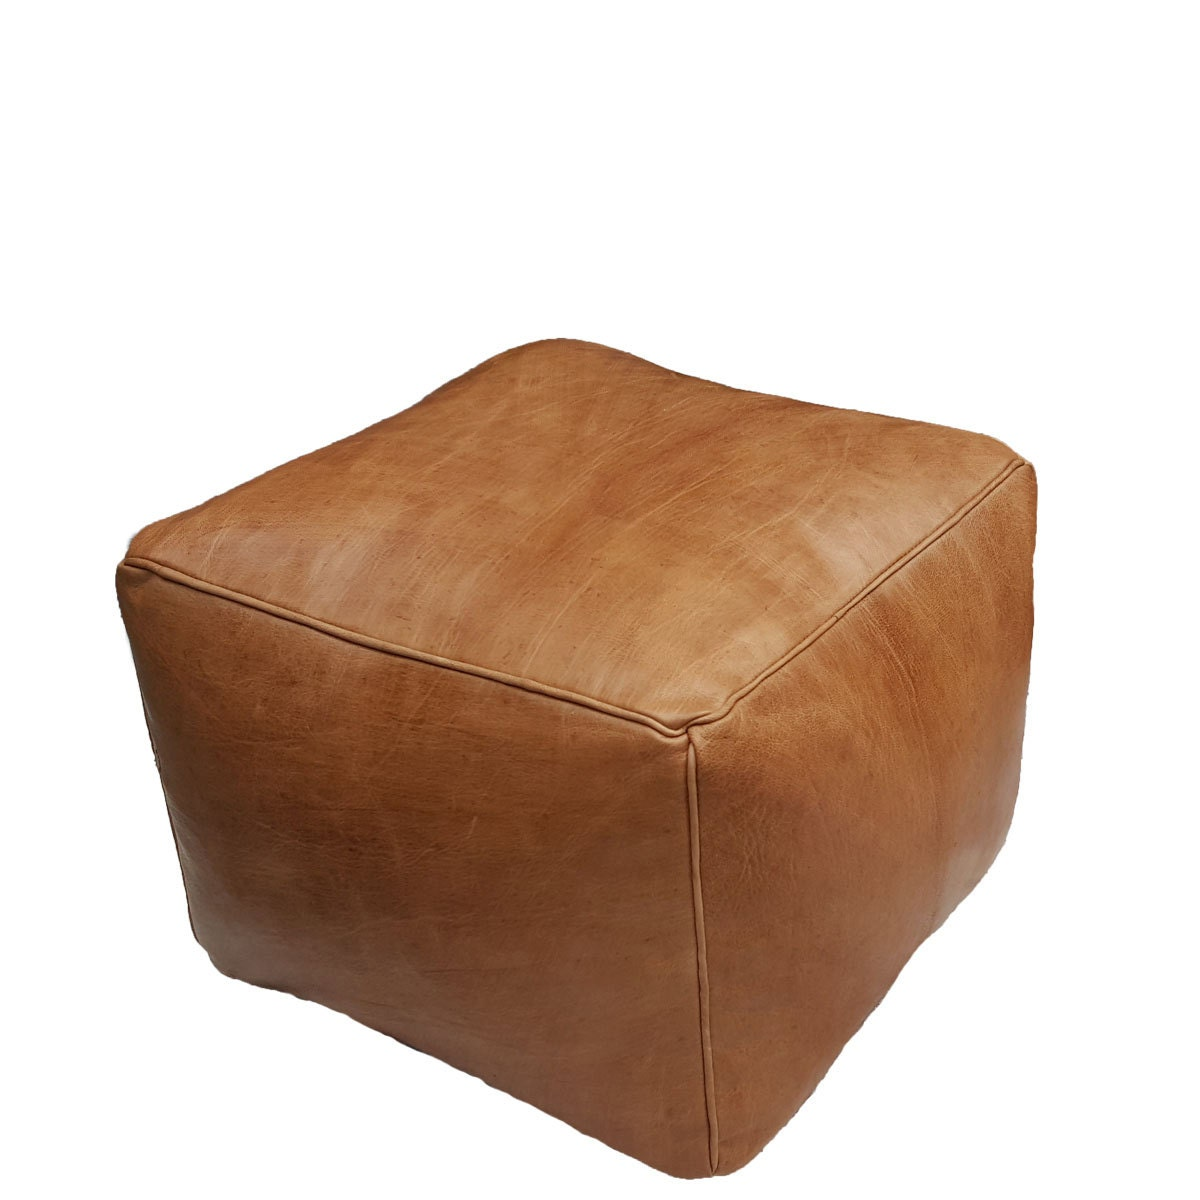 Leather Pouf Ottoman natural leather brown Cube small.